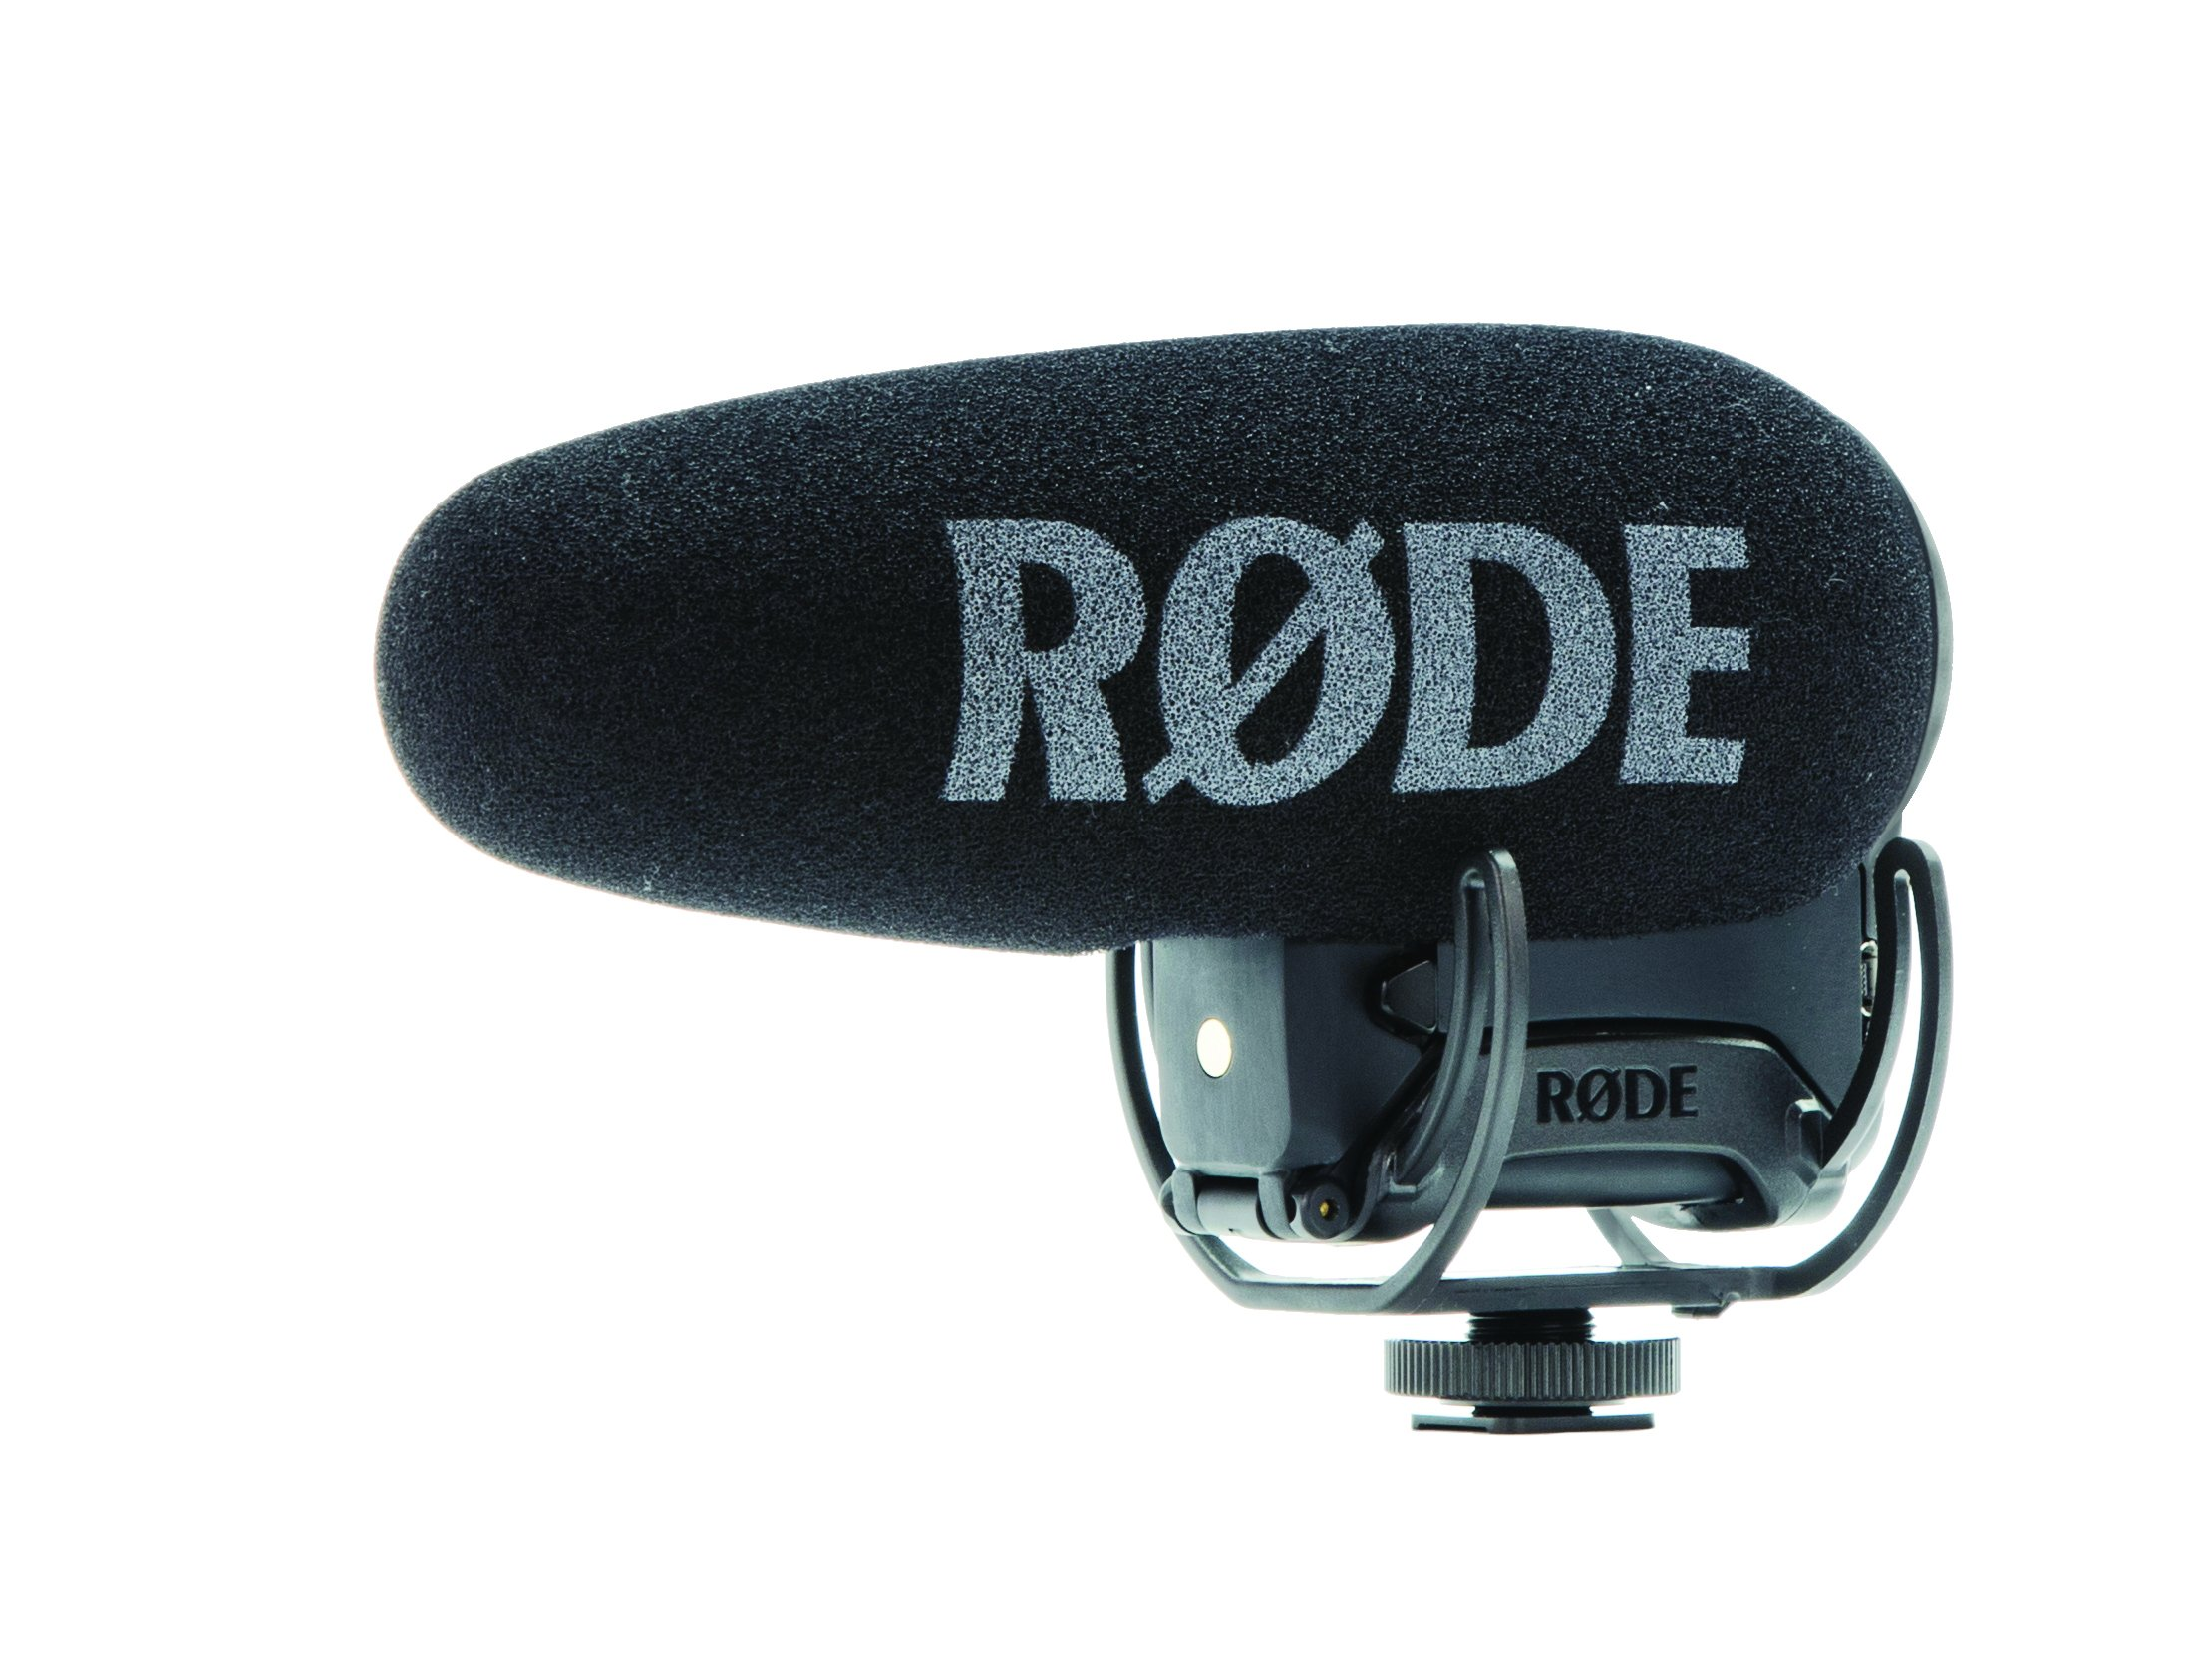 Rode Videomic Pro-R+ On-Camera Shotgun Condenser Microphone